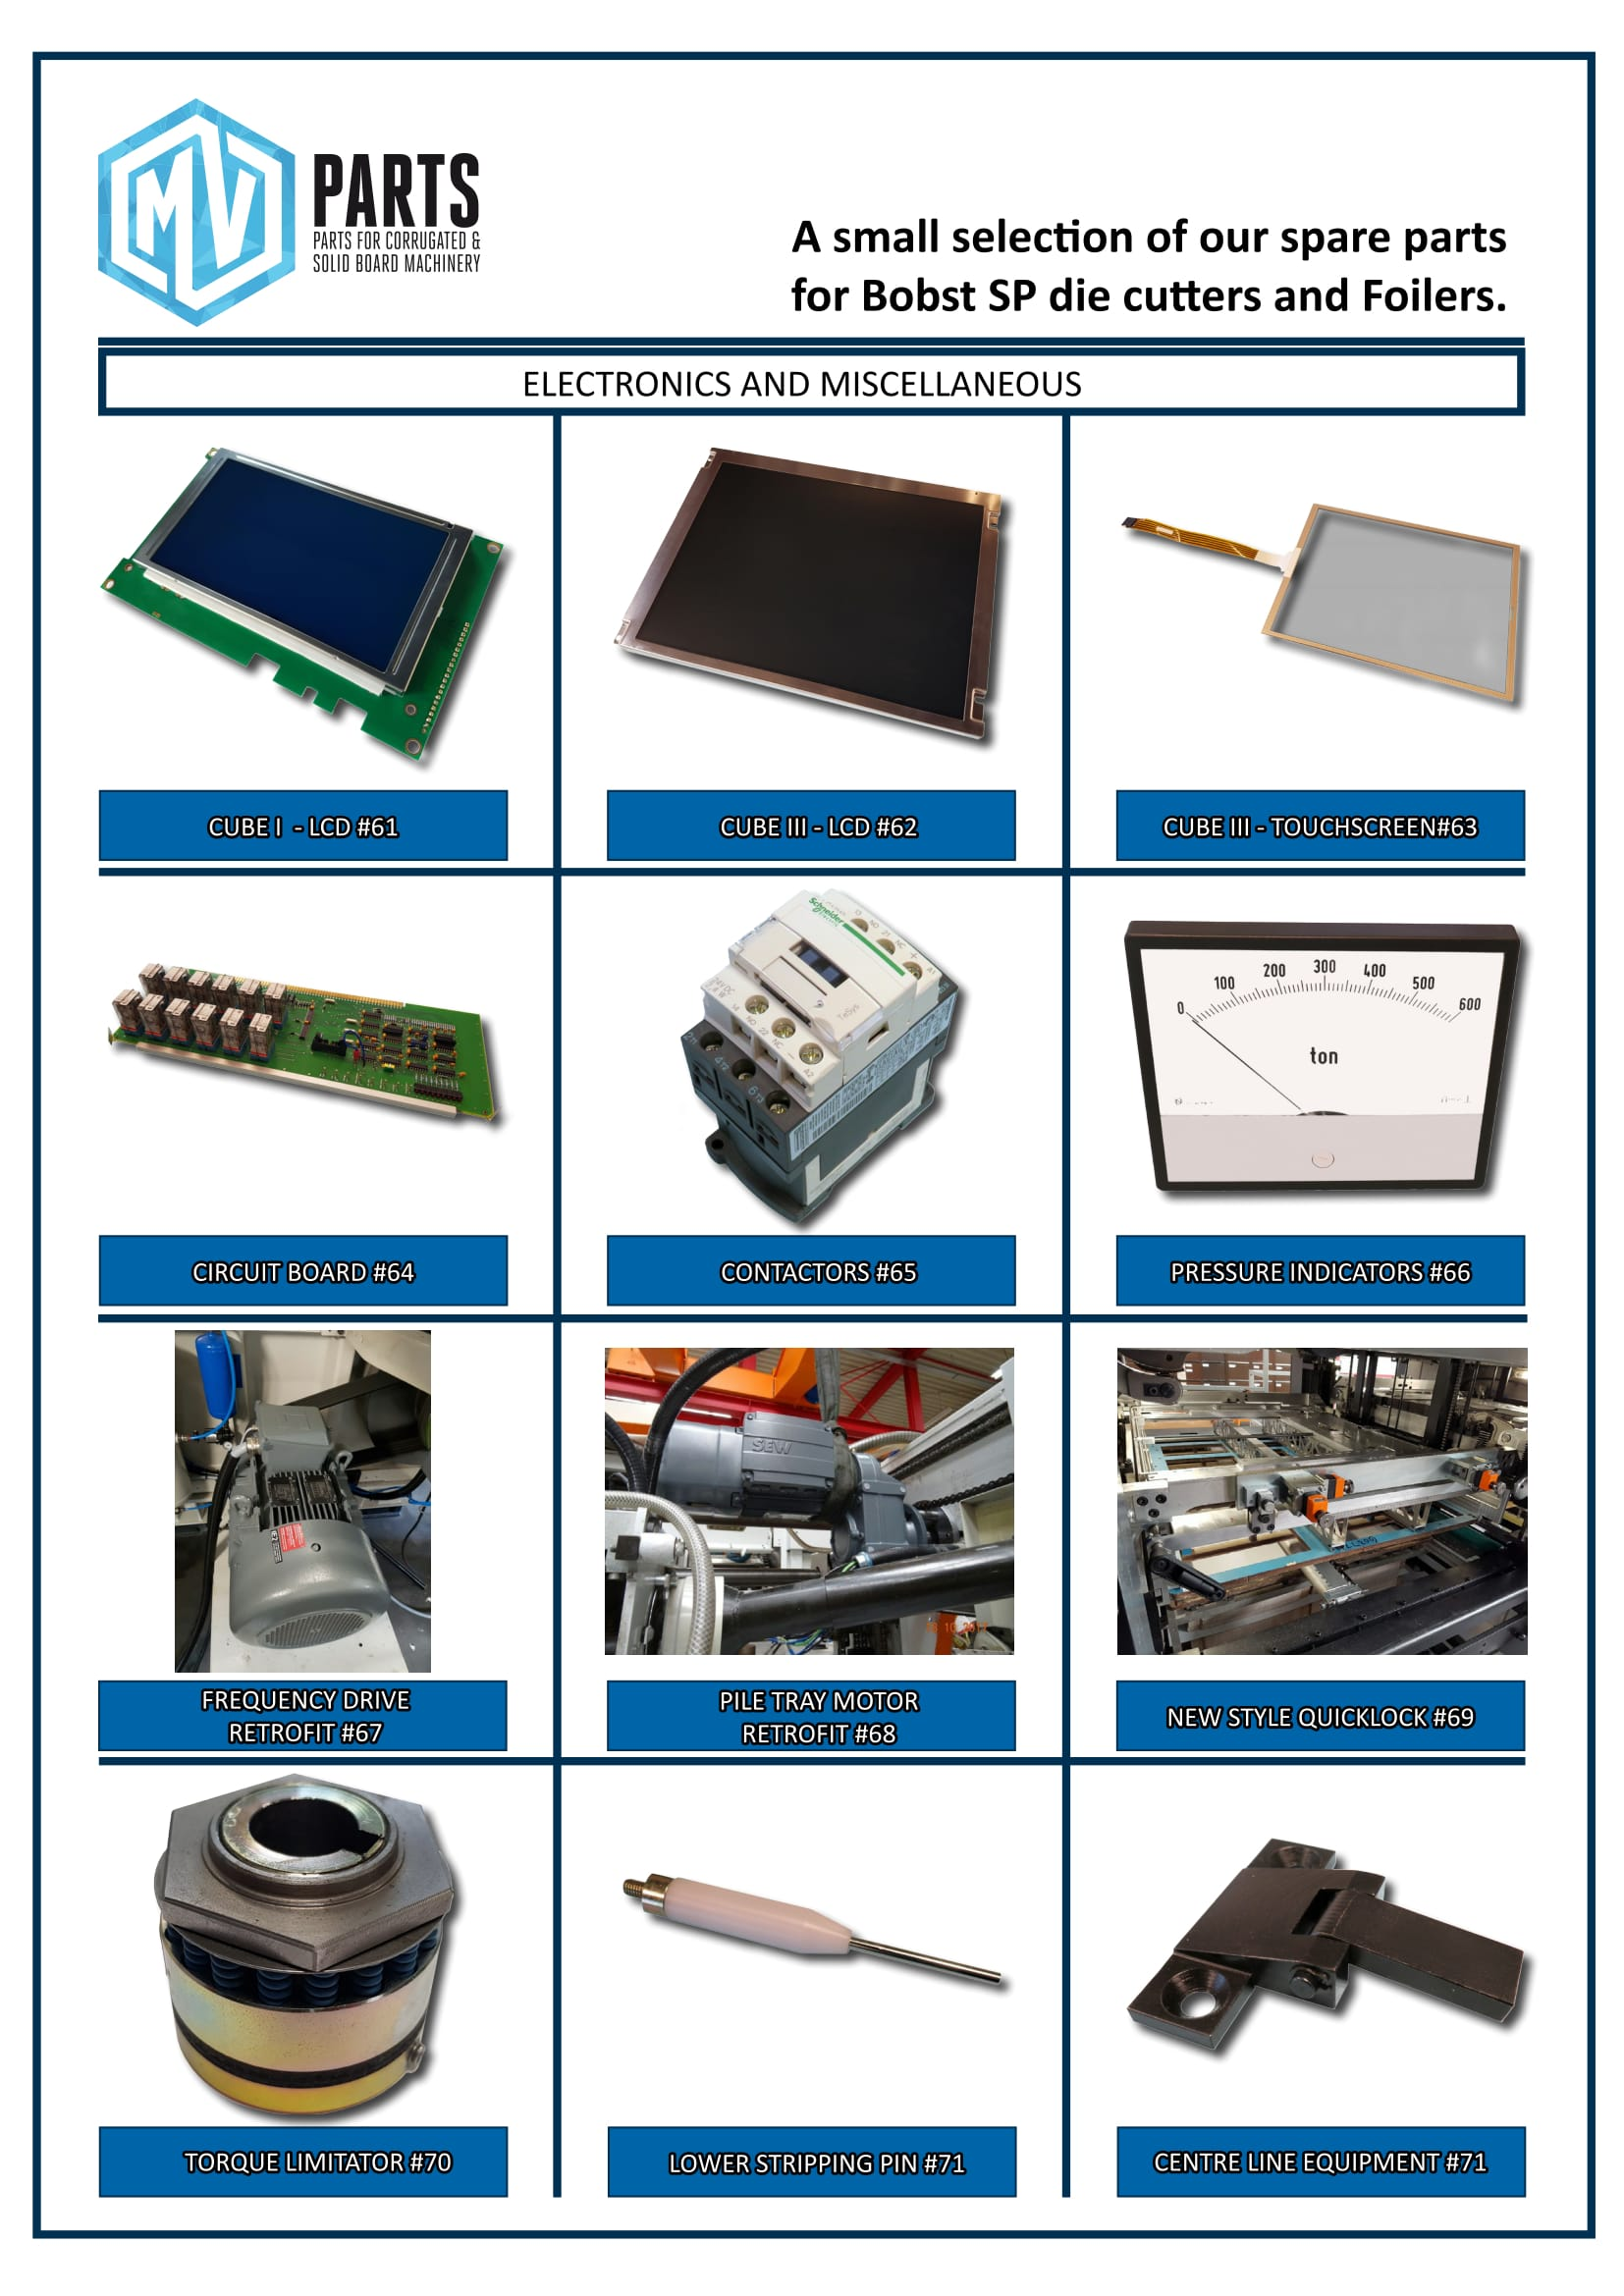 MV-Parts - parts for diecutters-6